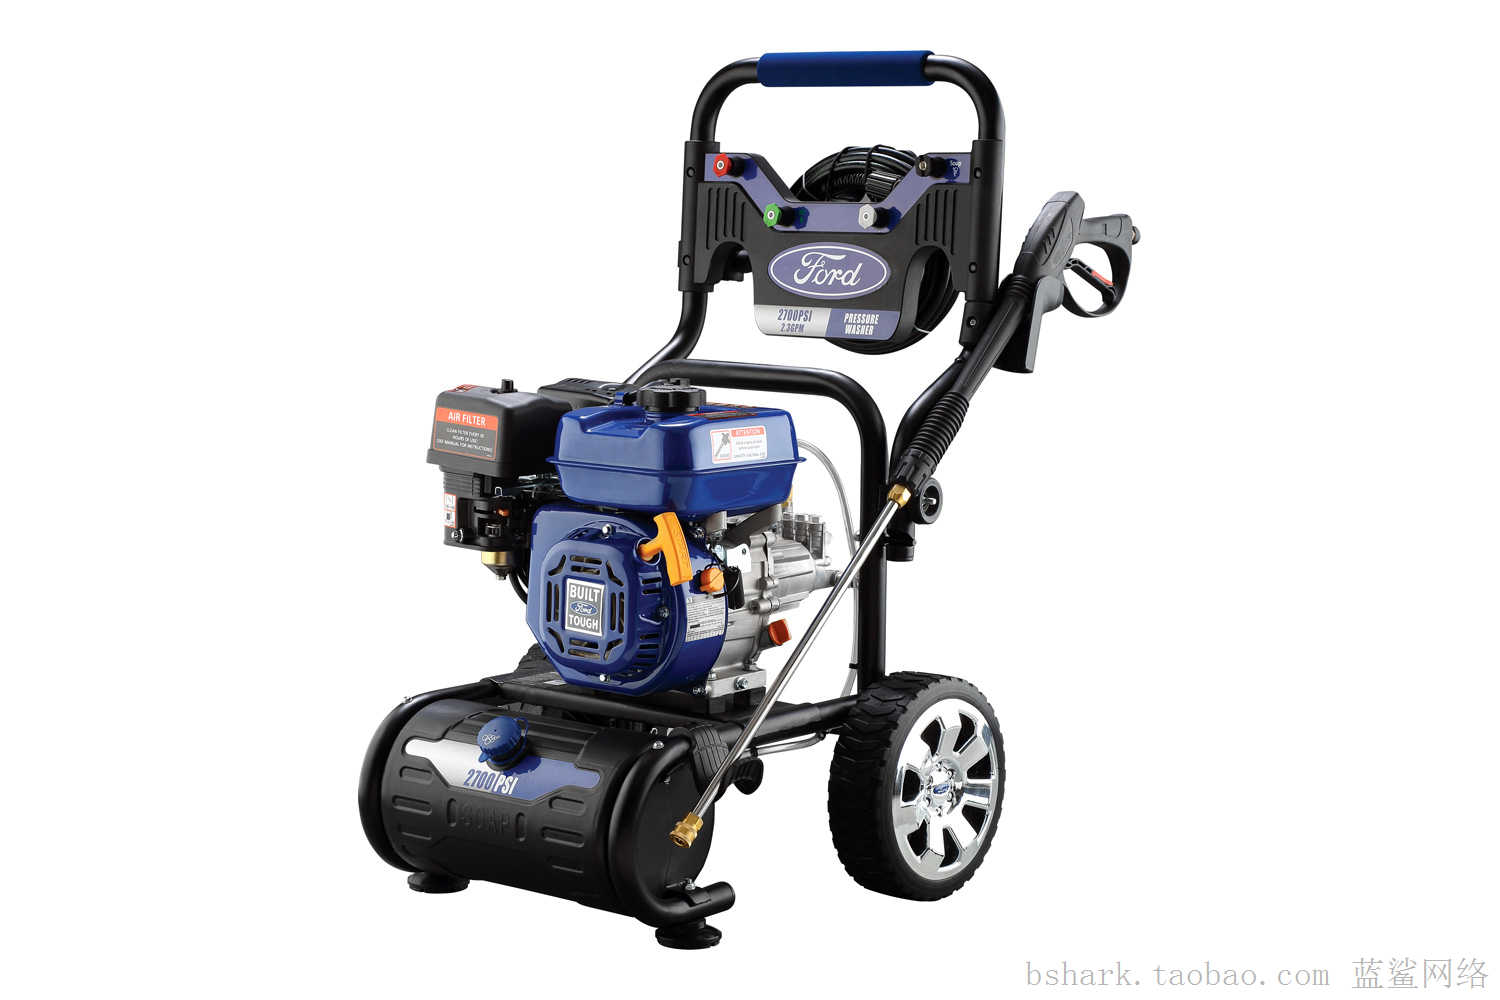 ford power equipment 2700 psi gas horizontal pressure washer p r. Black Bedroom Furniture Sets. Home Design Ideas